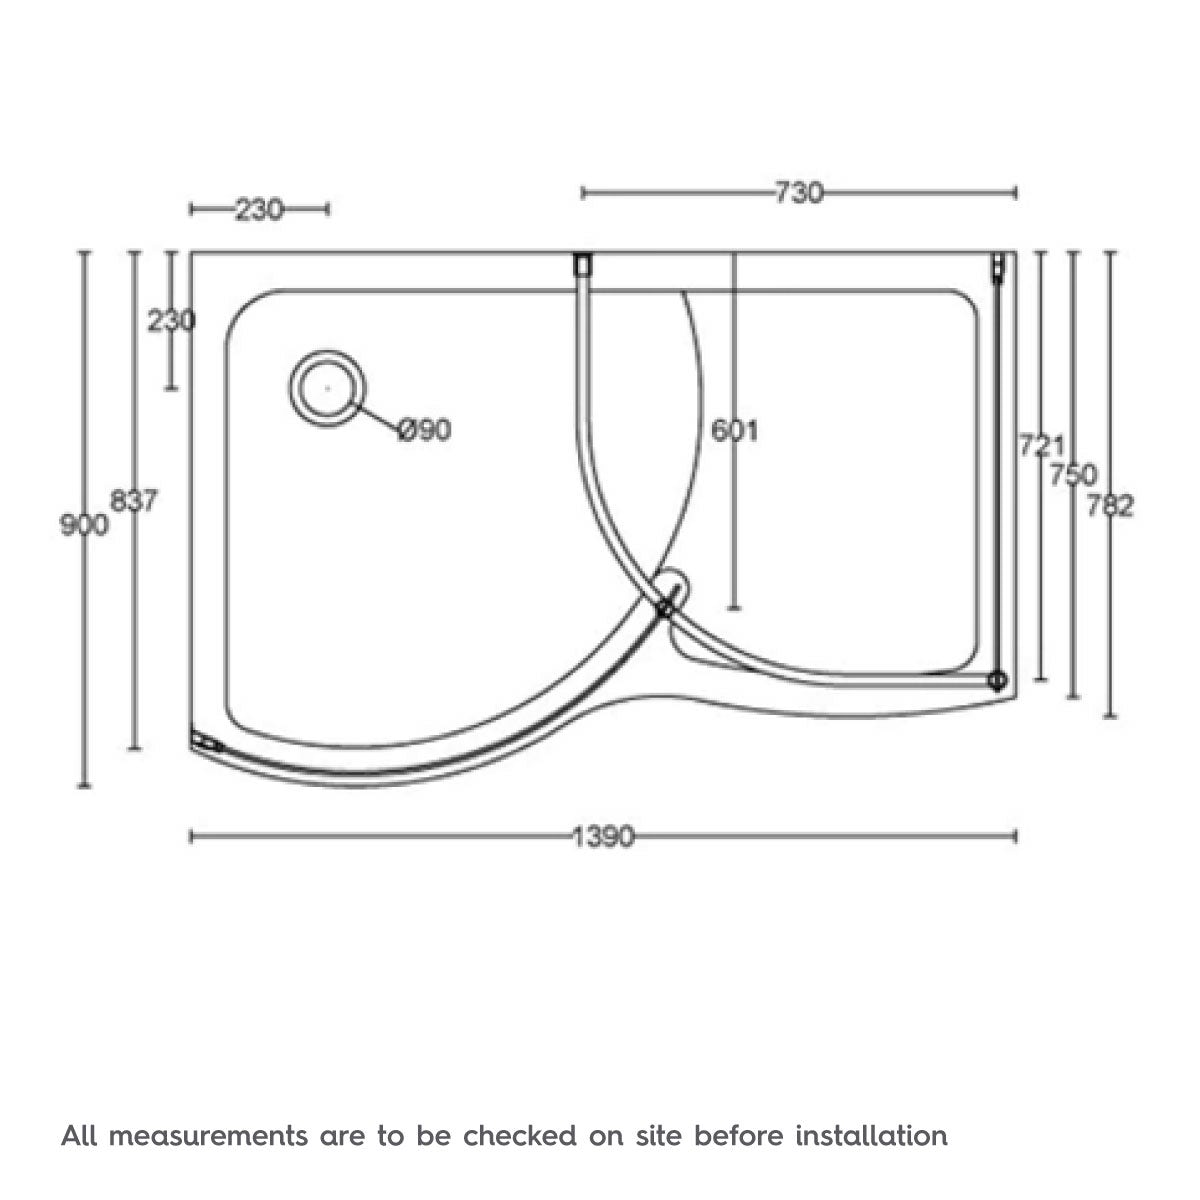 Dimensions for Orchard Curved Walk In Shower Enclosure Tray LH